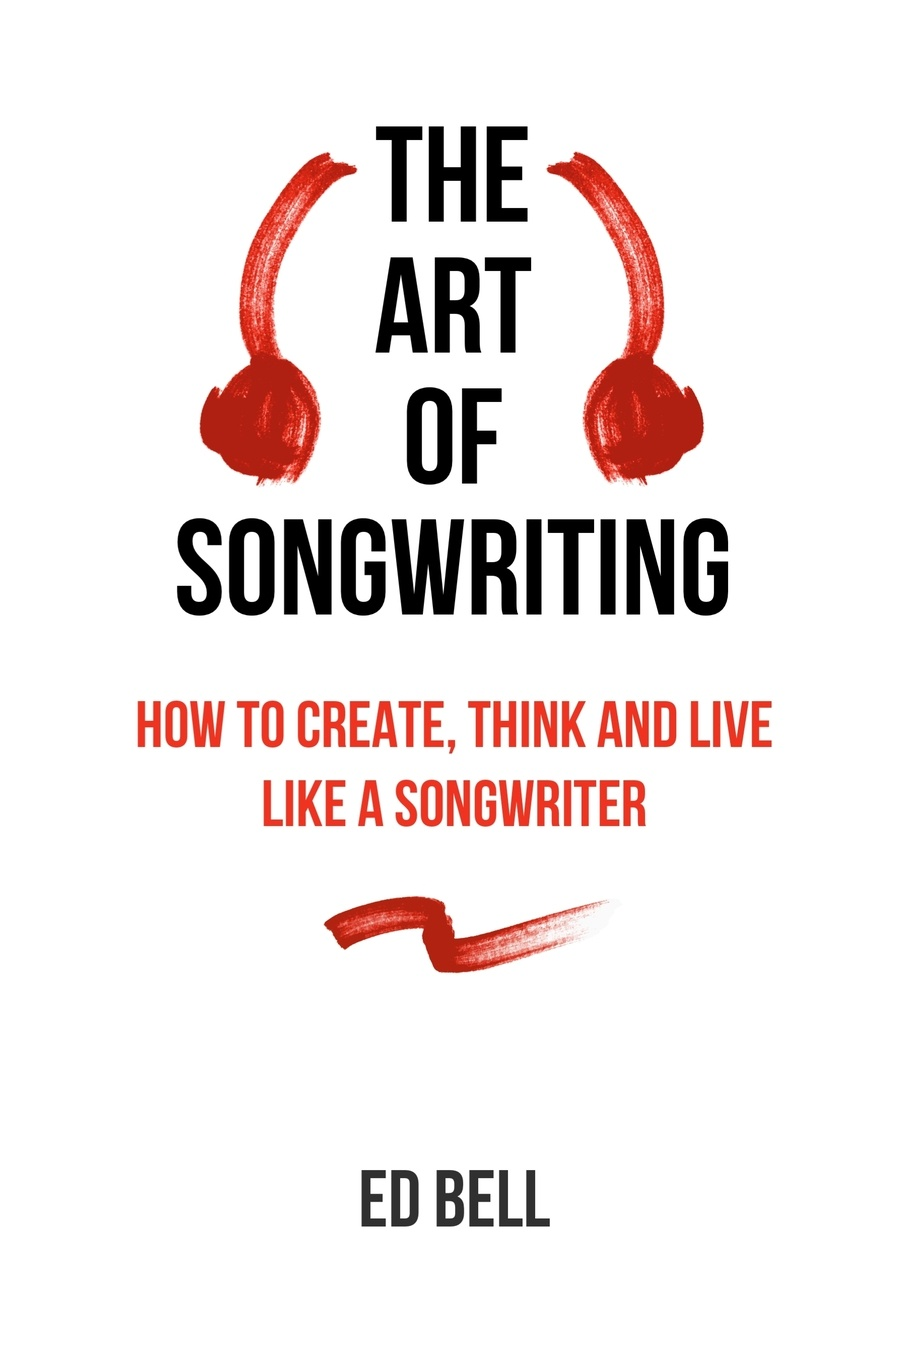 Ed Bell The Art of Songwriting. How to Create, Think and Live Like a Songwriter